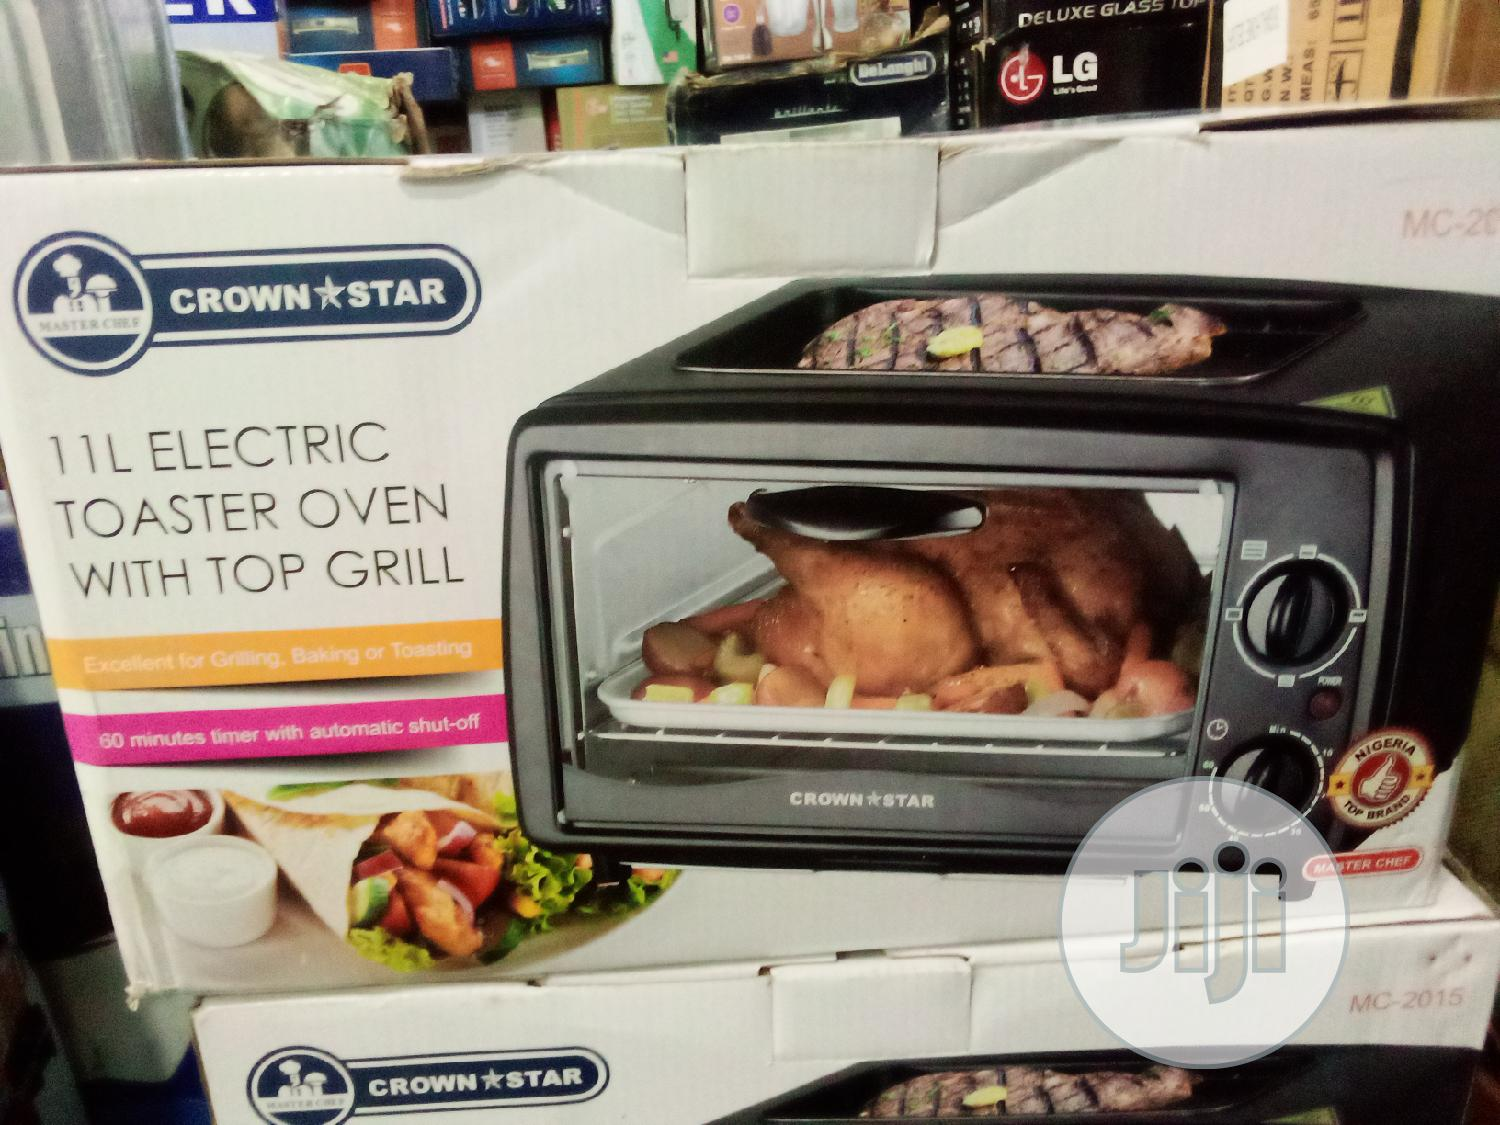 Crown Star Toaster Oven